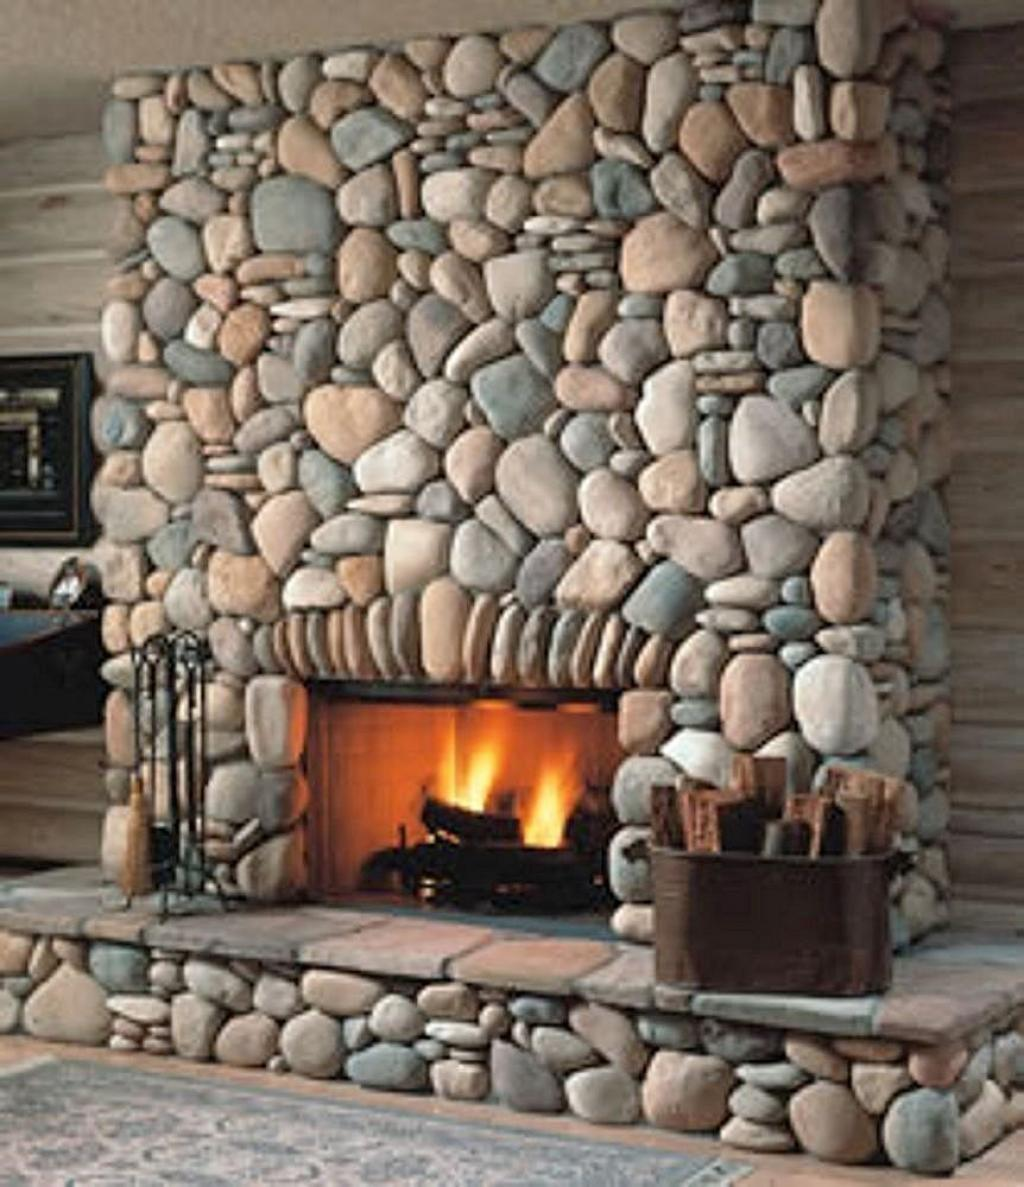 Amiable Stone Veneer Decorative Fireplace Design Modern